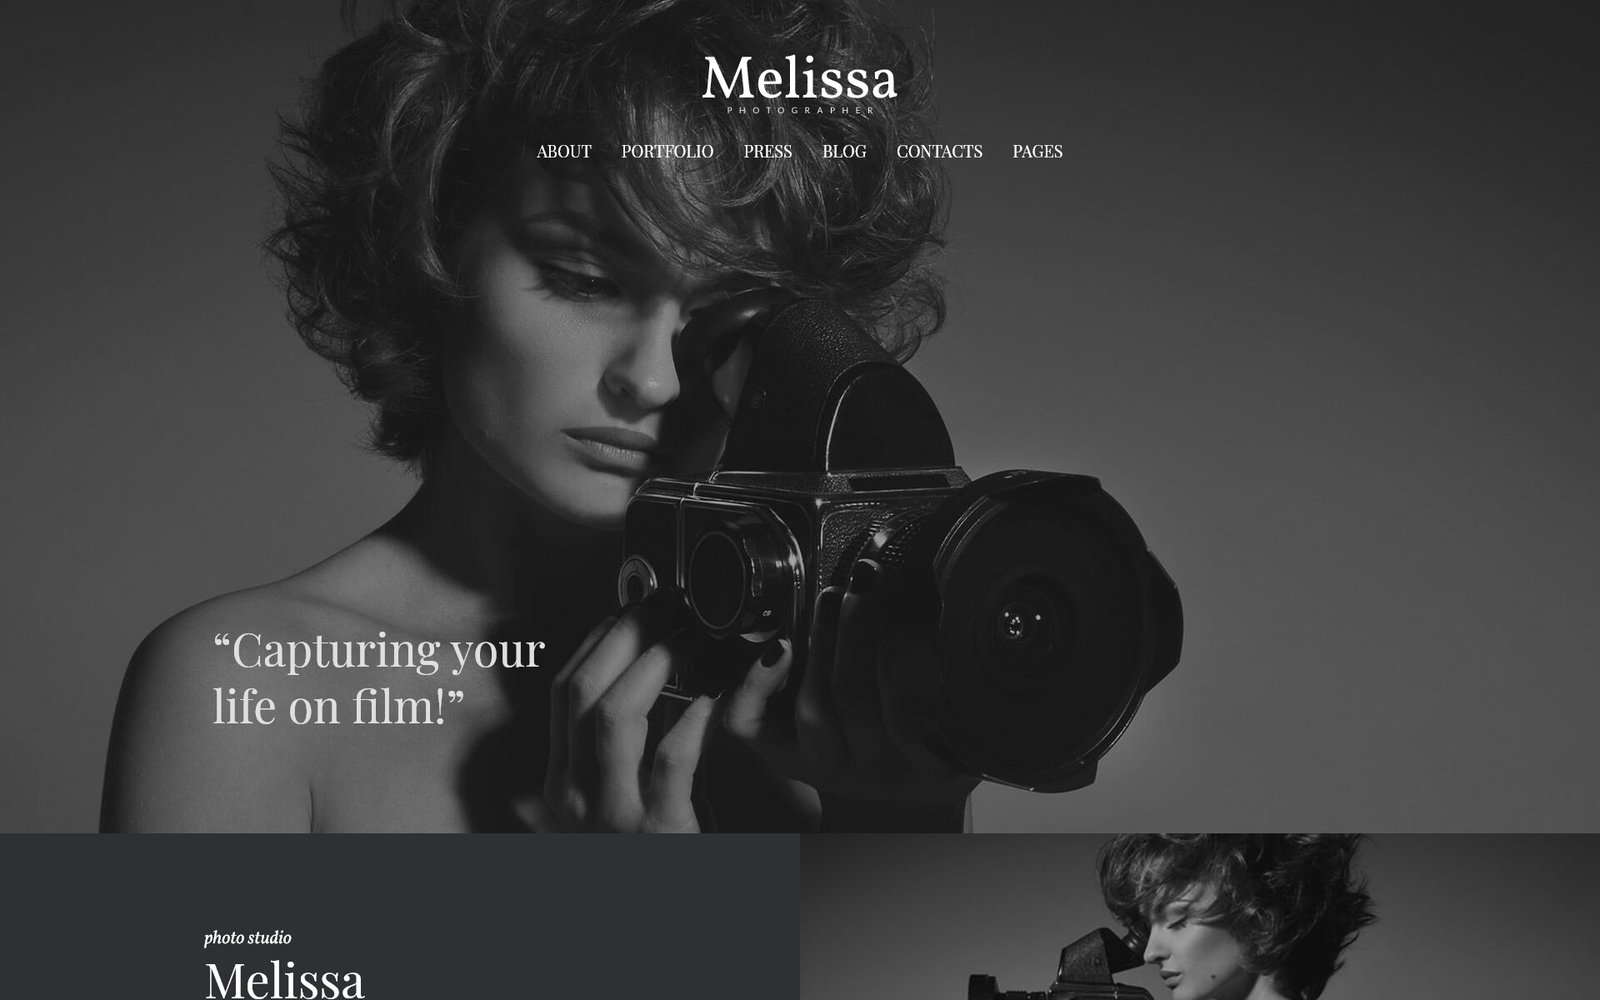 Melissa - Art & Photography & Photographer Portfolio & Photo Studio Responsive WordPress Theme WordPress Theme - screenshot